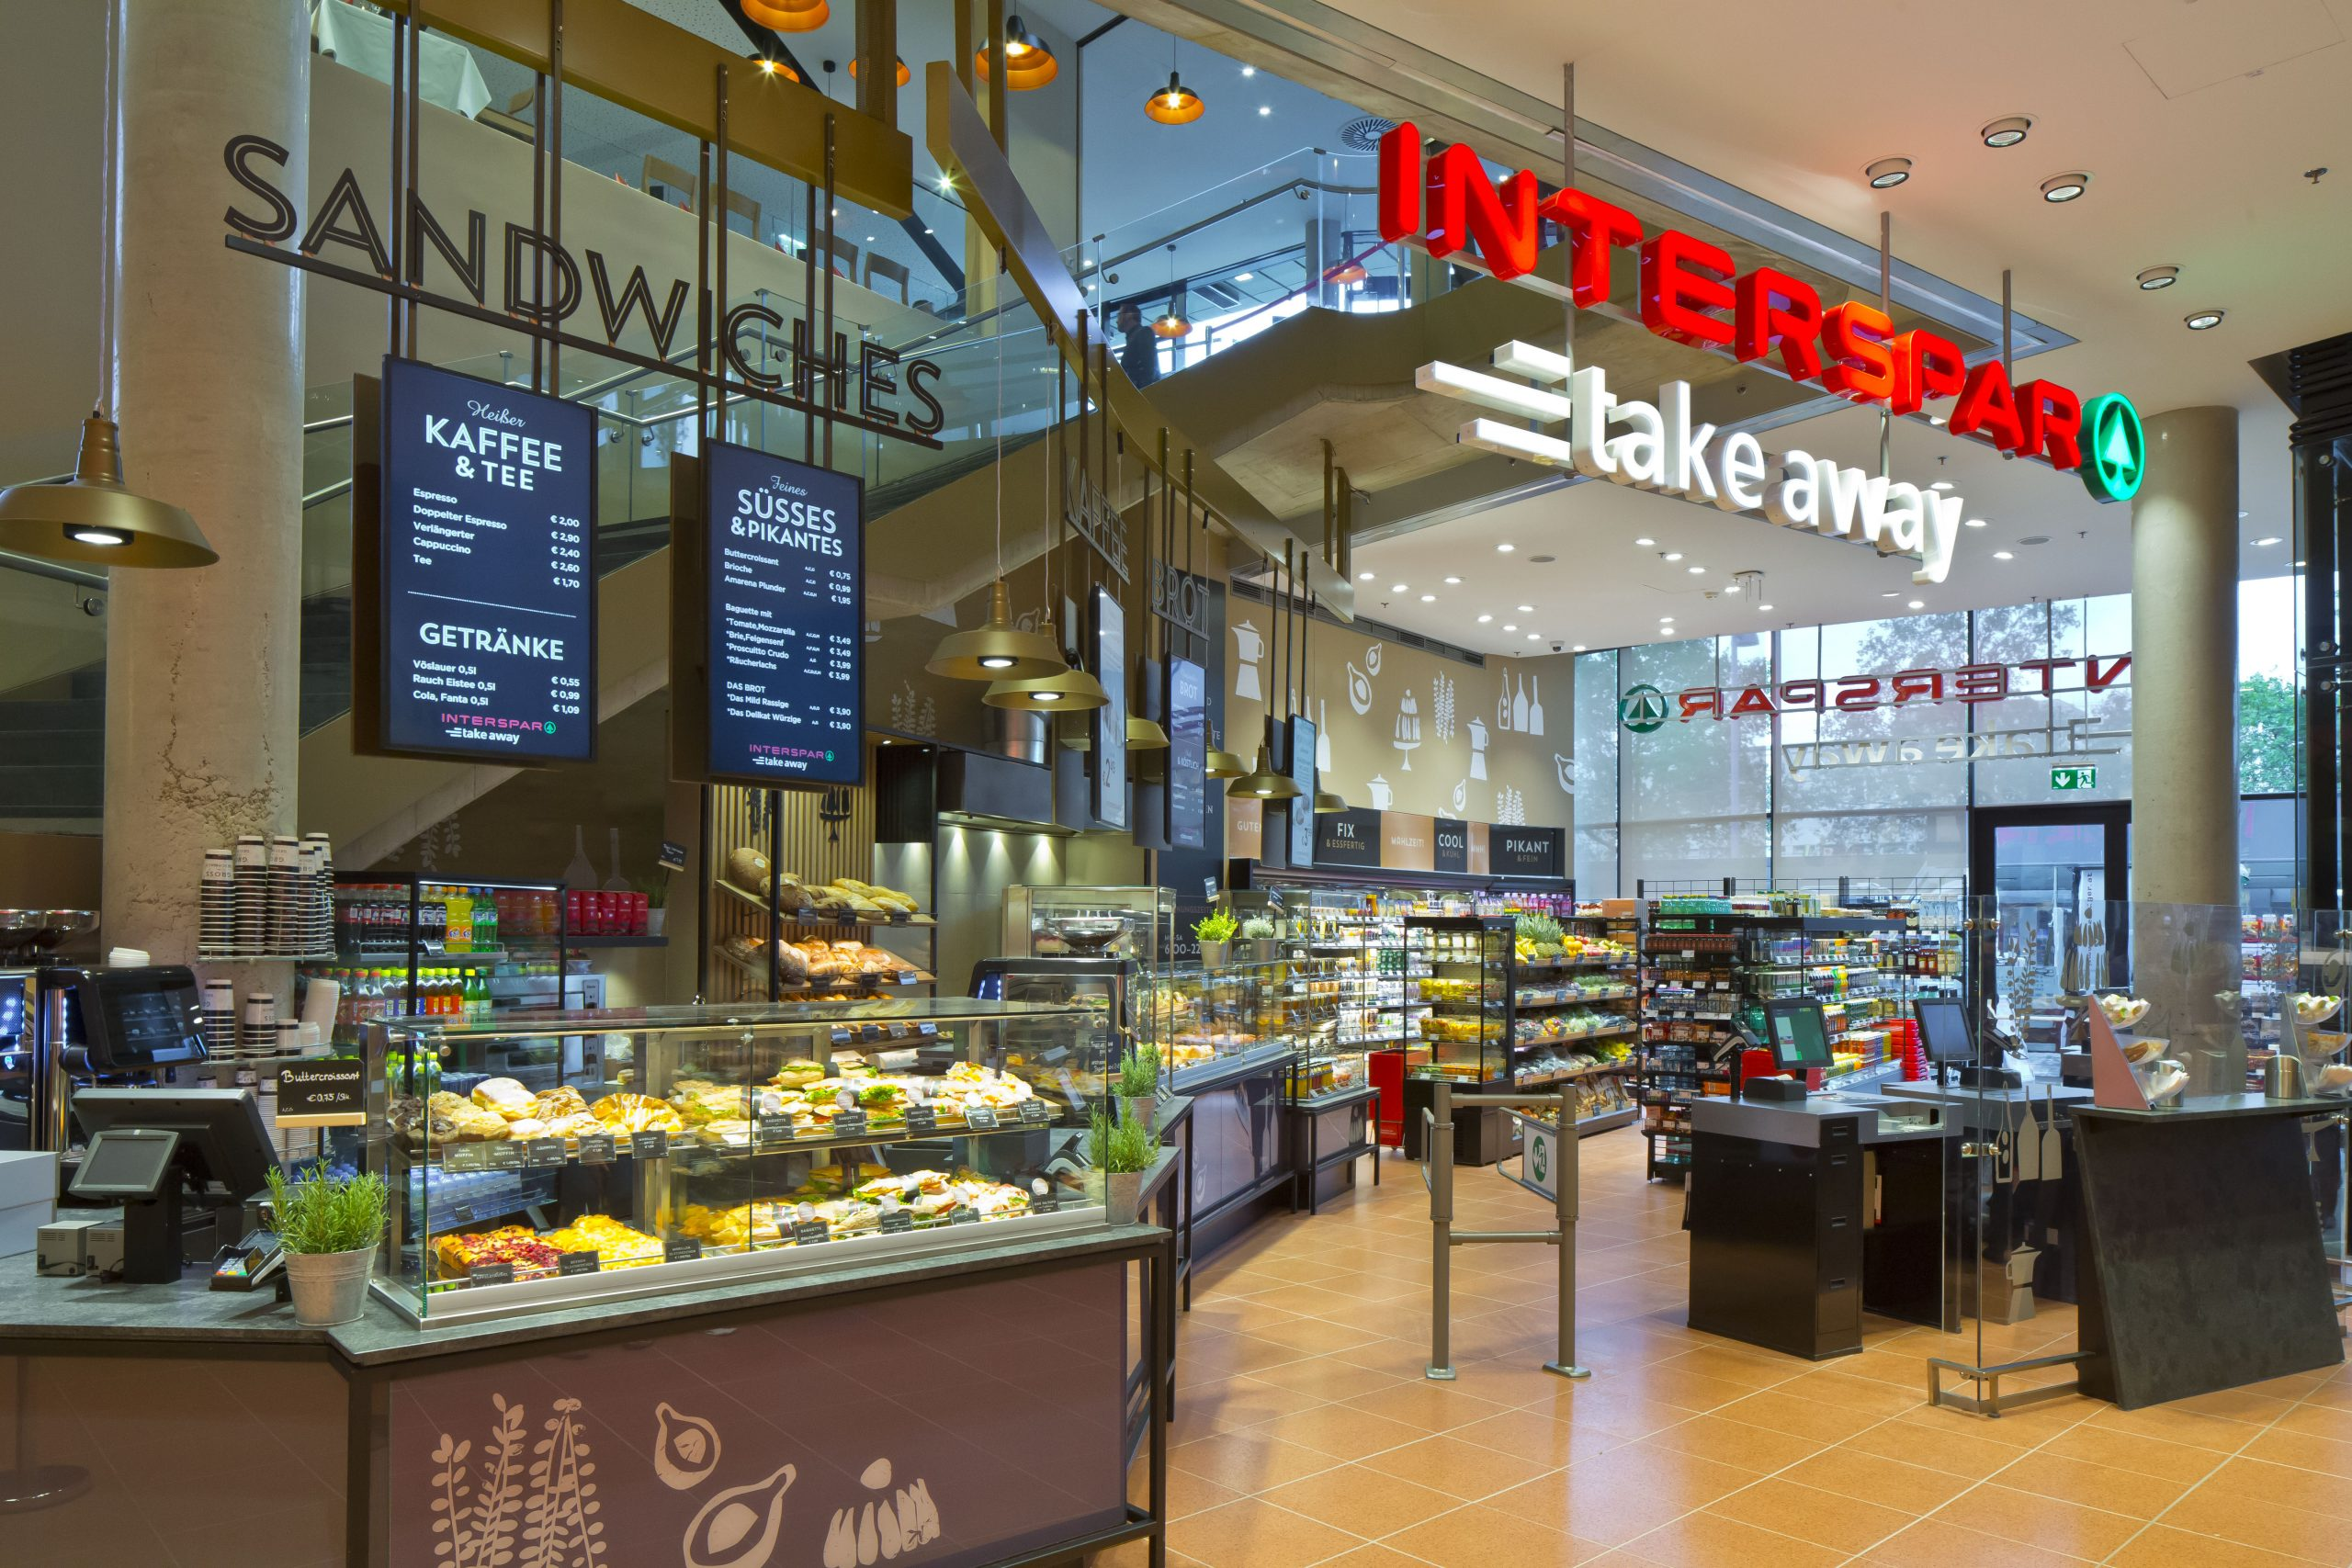 Interspar-Take away